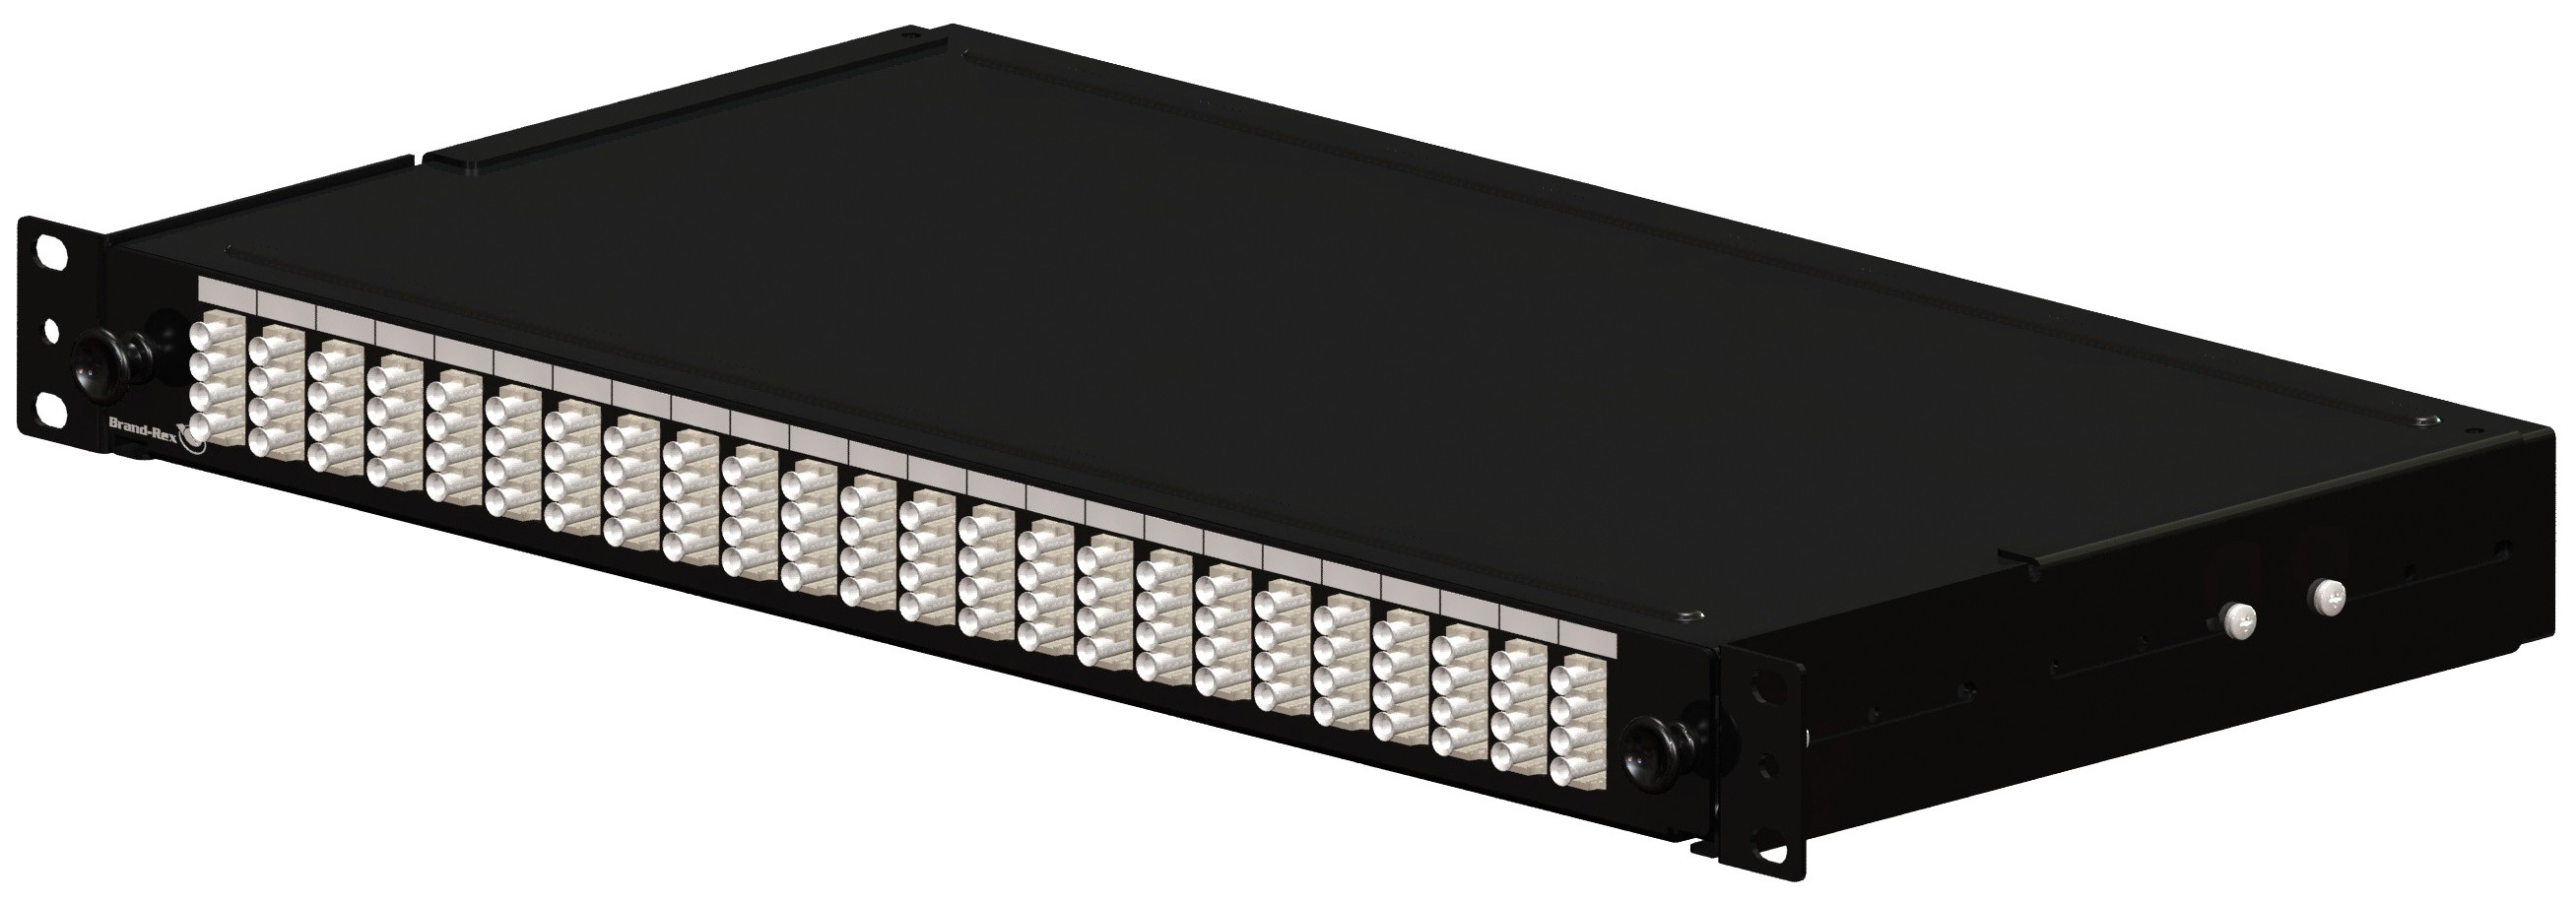 Brand-Rex Optical Panel loaded with 6 ST Multimode adapters